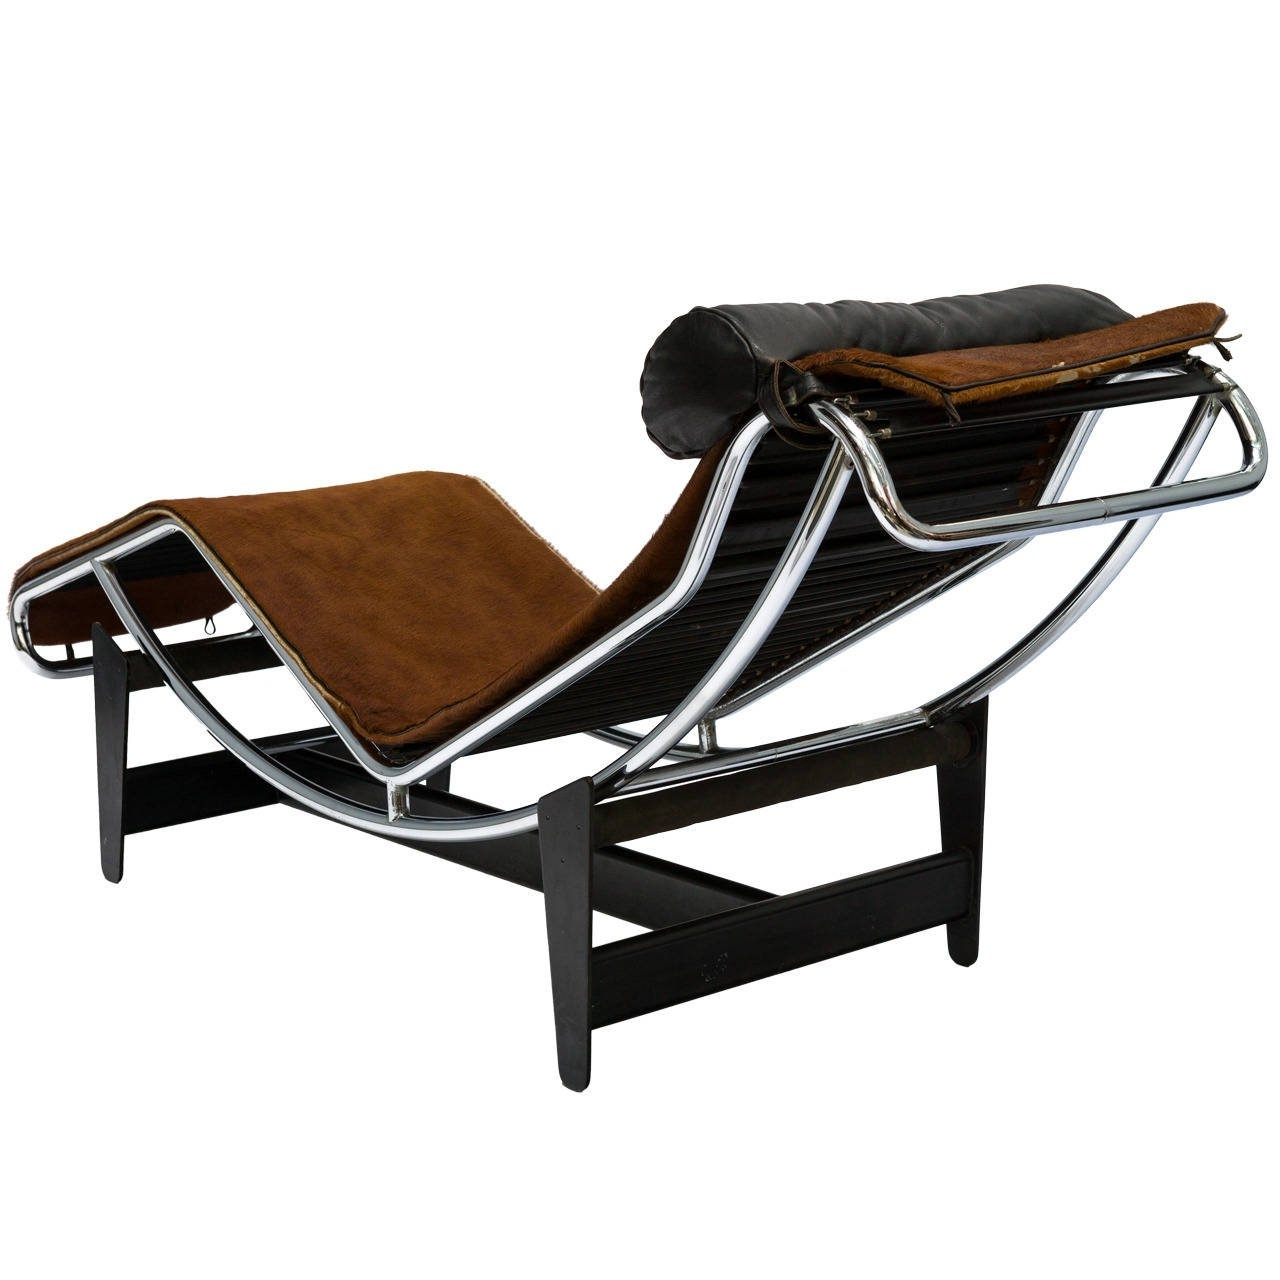 Favorite Le Corbusier Lc4 Chaise Lounge Chair In Cowhide For Sale At 1Stdibs With Le Corbusier Chaises (View 7 of 15)